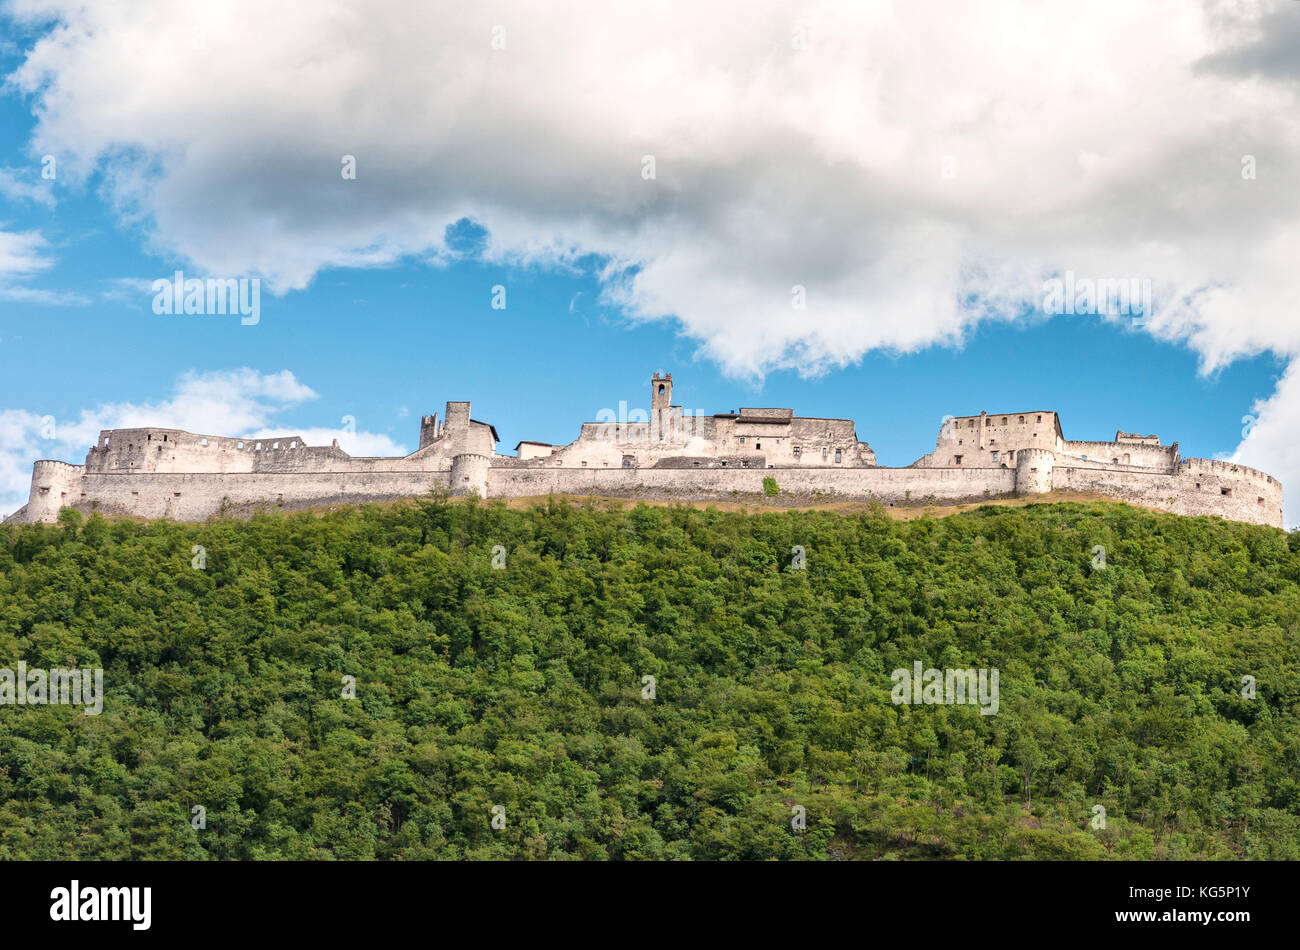 View of Castle Beseno, the largest feudal fortress all over the Trentino District, Italy - Stock Image